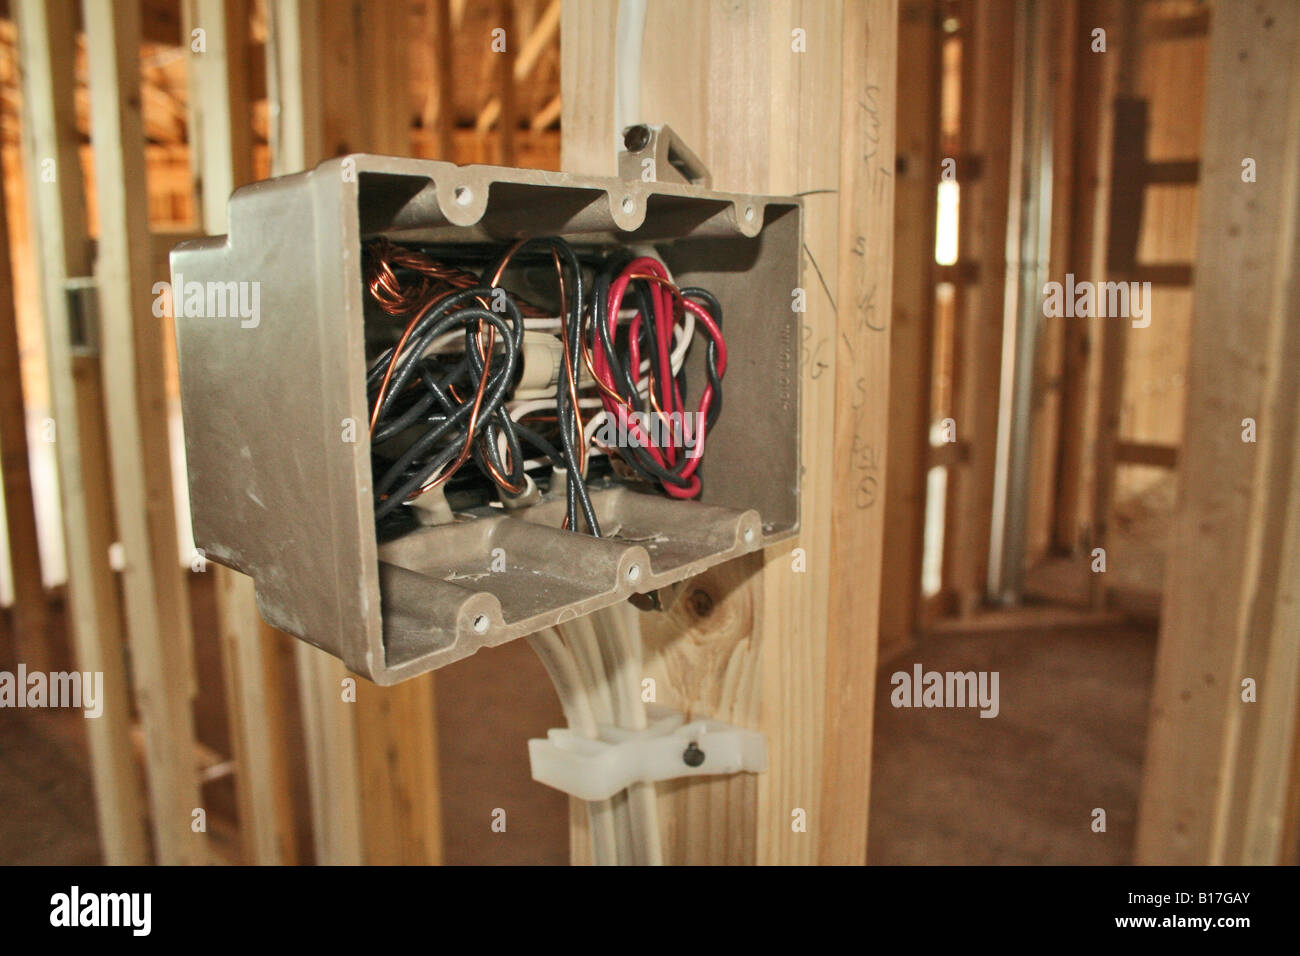 Electrical outlet wiring in new home construction